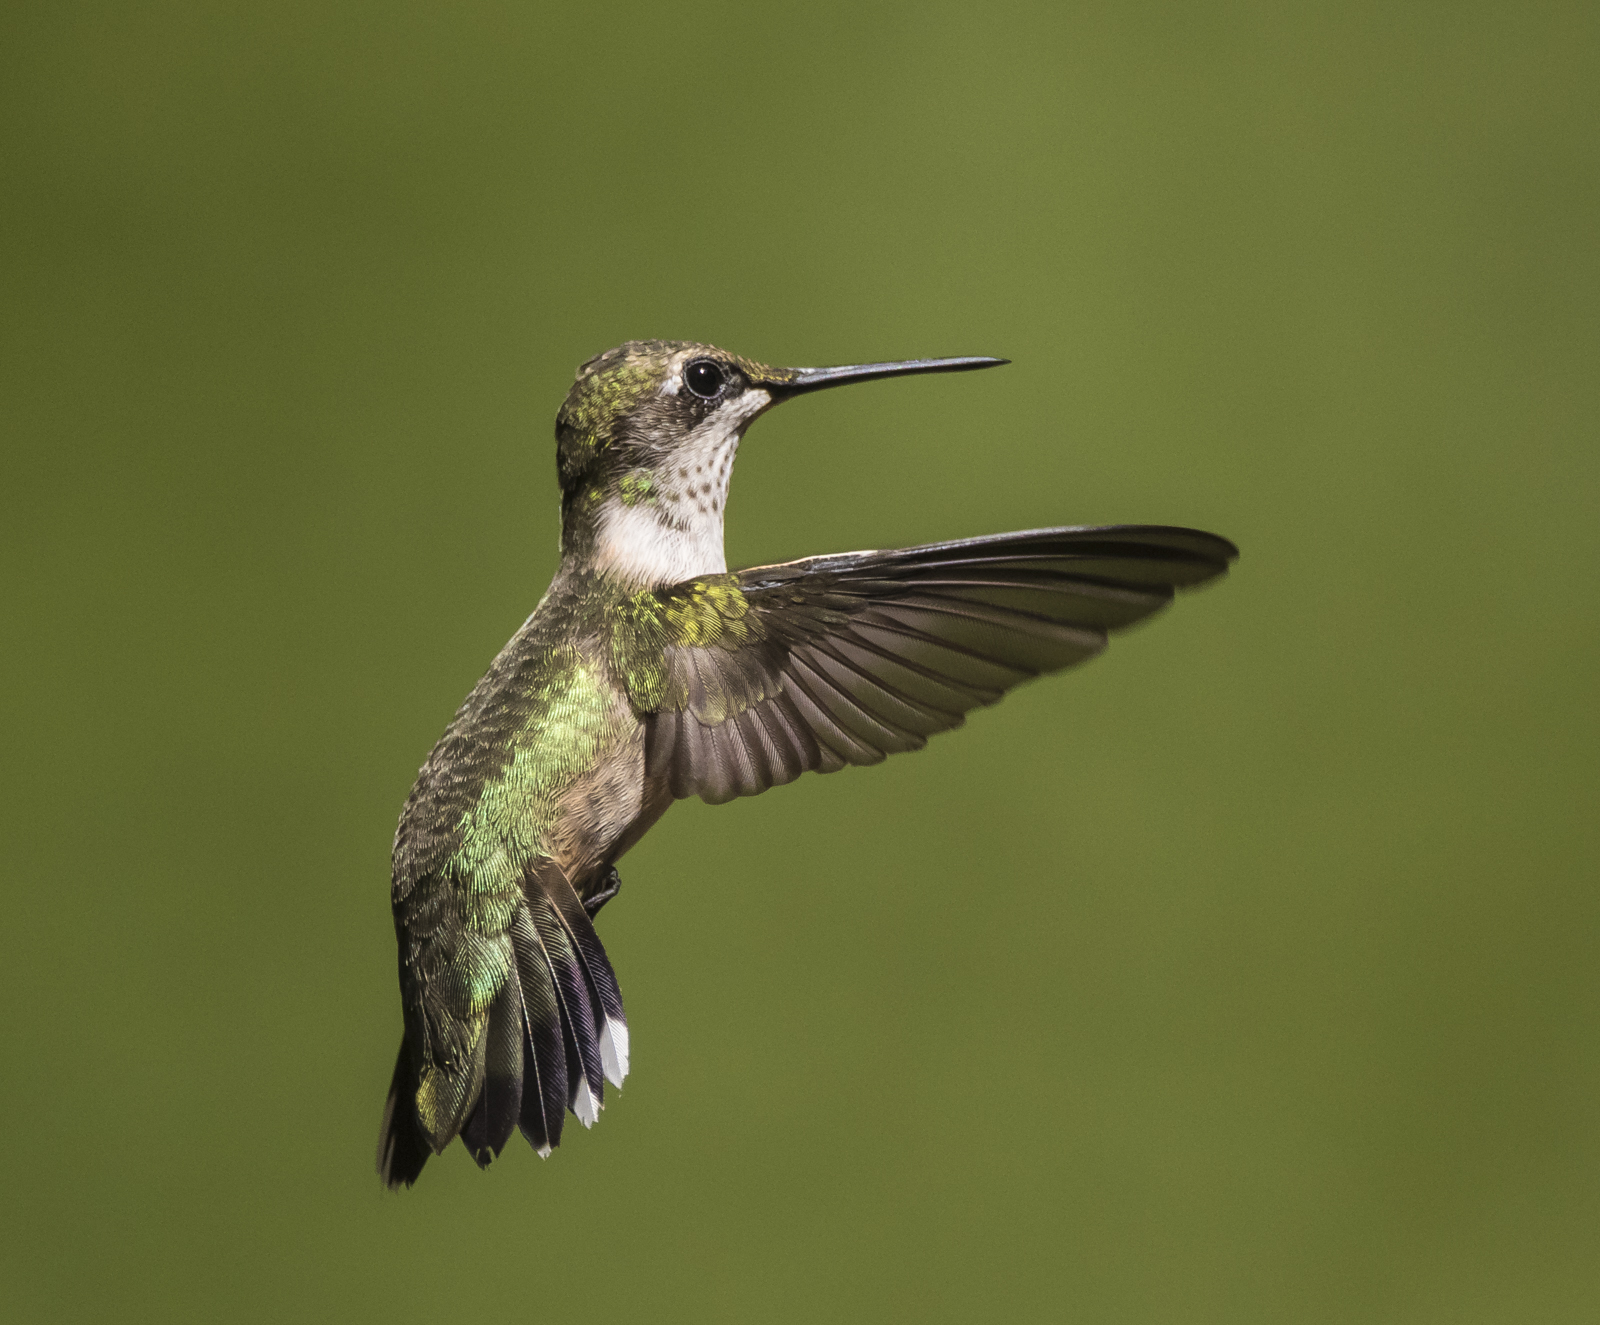 Ruby-throated hummingbird imm male